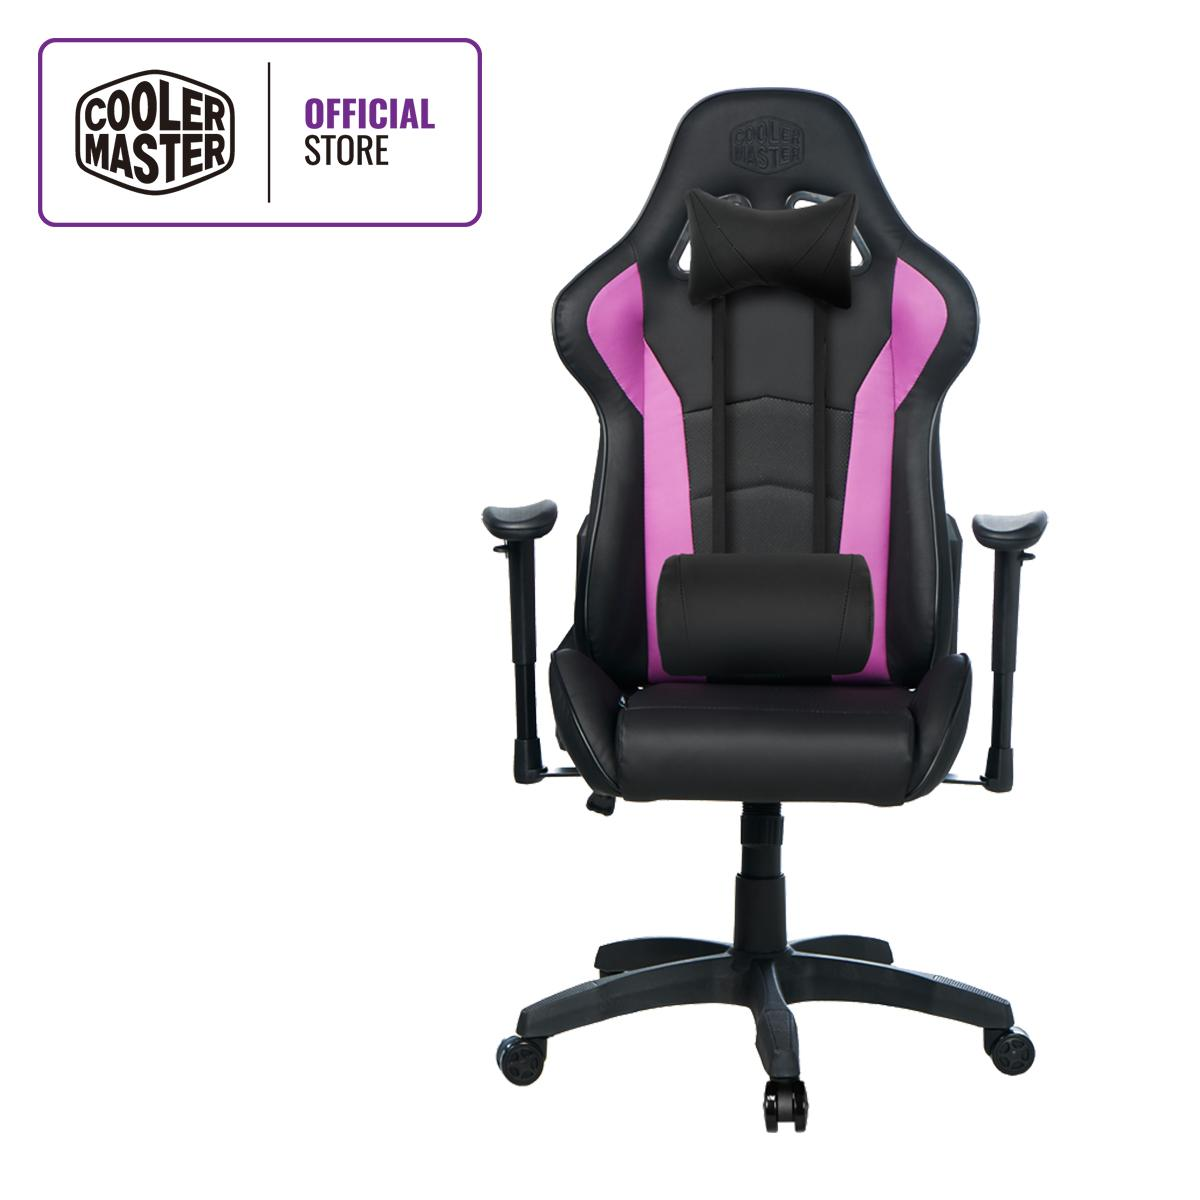 Cooler Master Caliber R1 Breathable PU Leather Gaming Chair